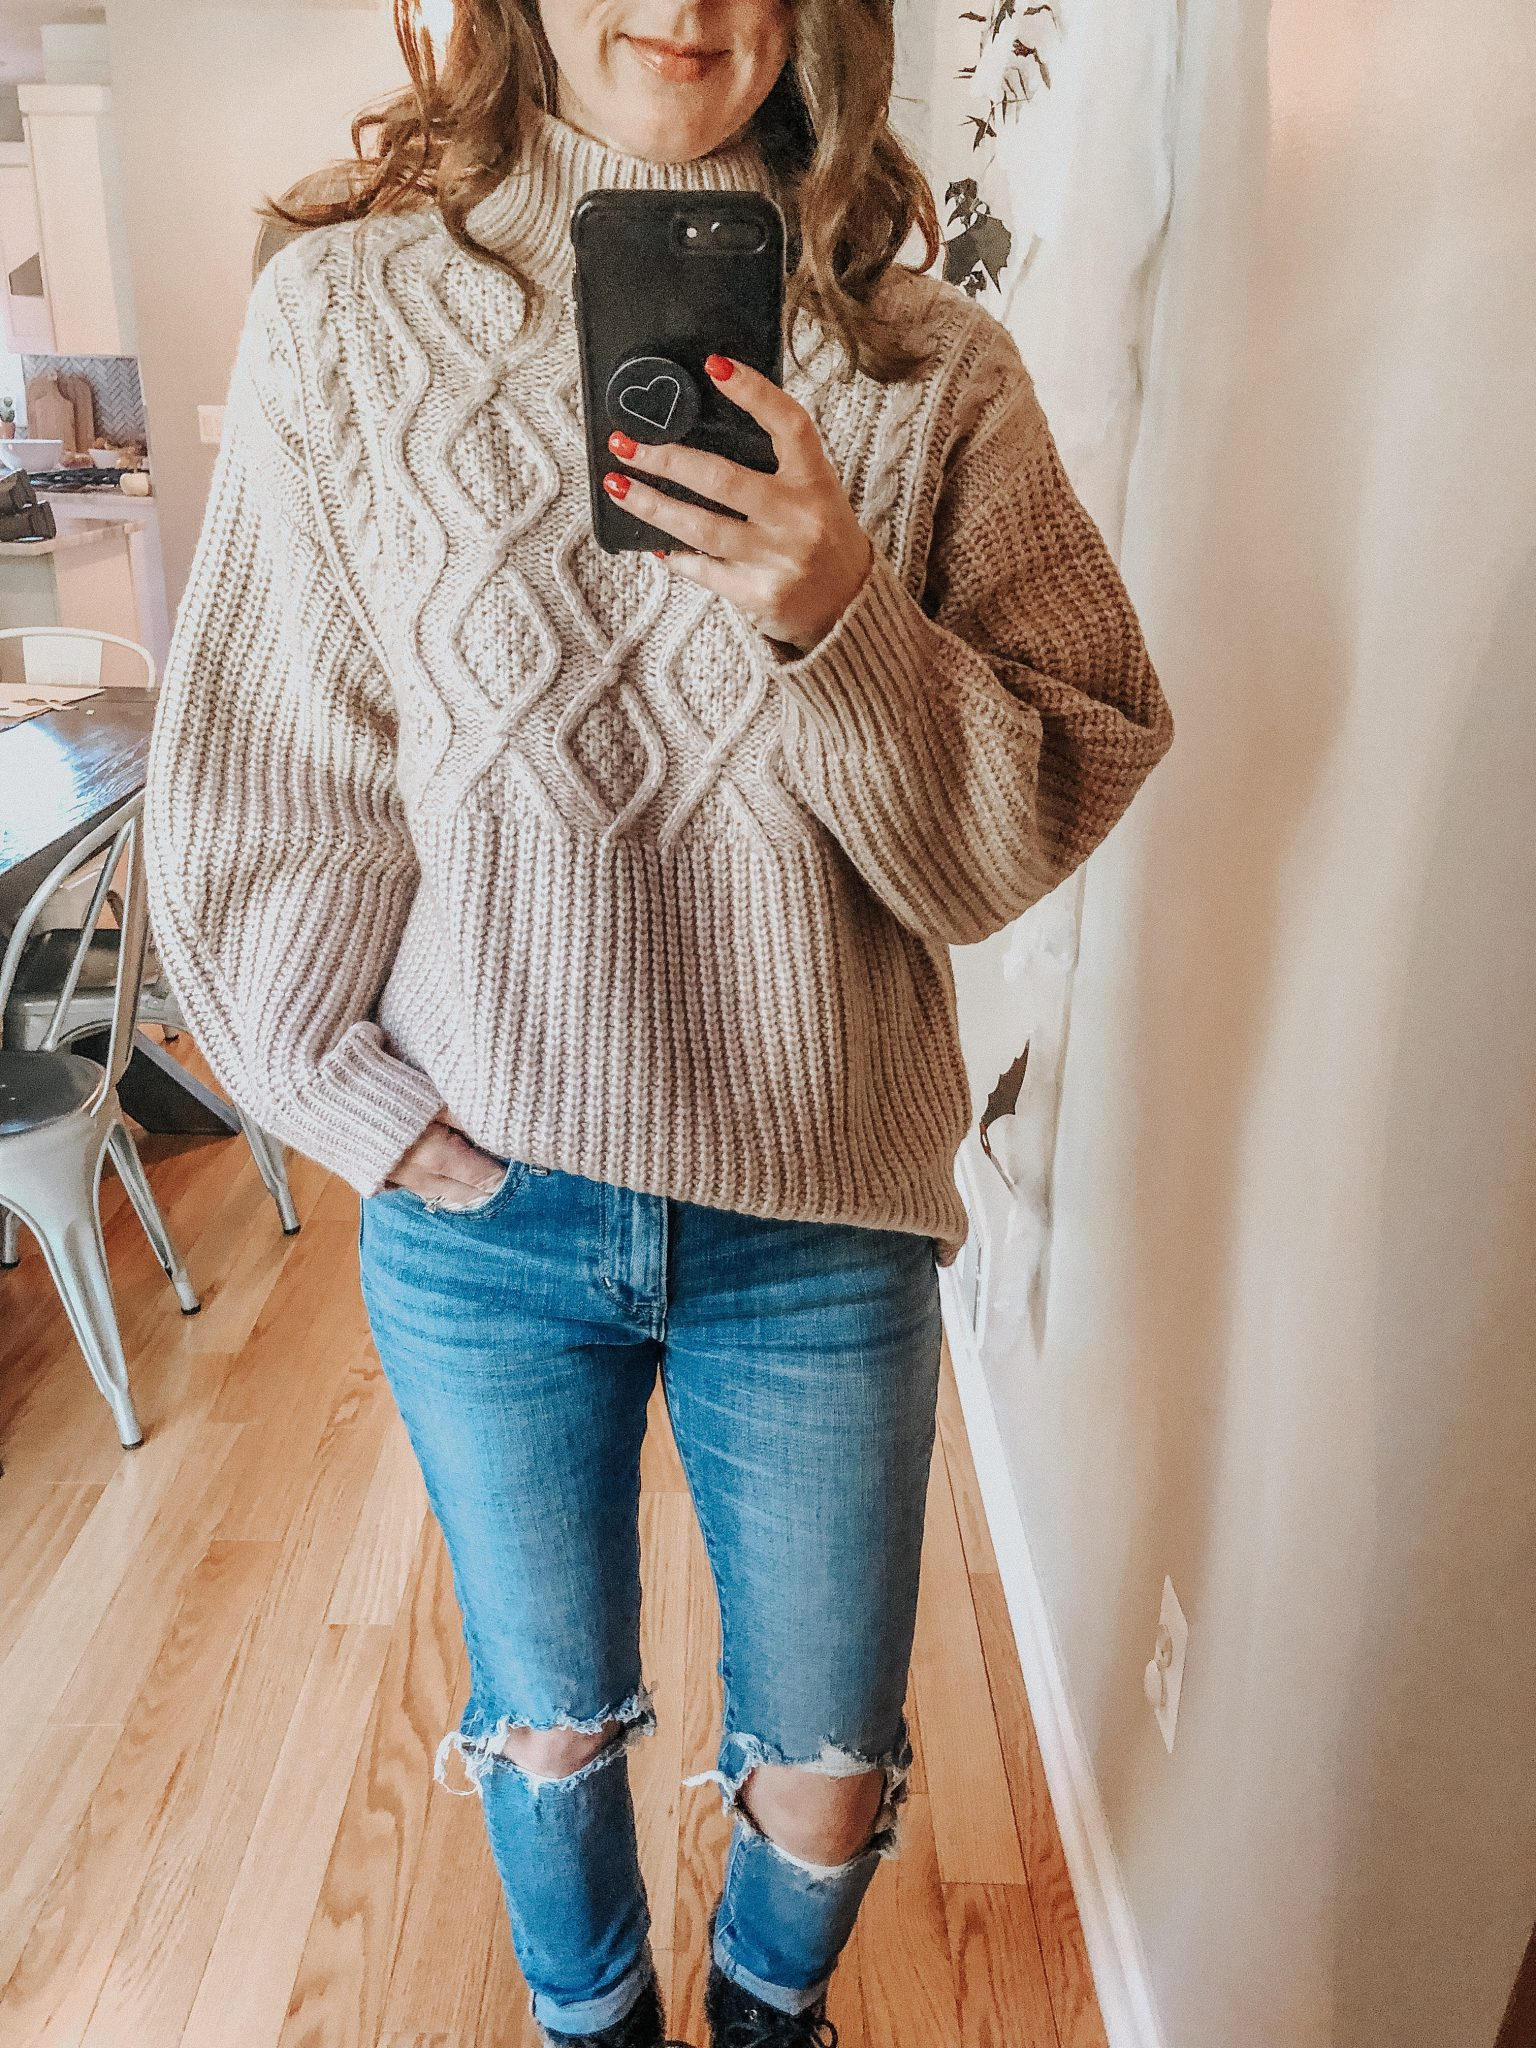 Winter sweater roundup | Daily Splendor Life and Style Blog | sweater dress #wintersweaters #fallsweater #turtlenecksweater #cozysweaters #target #mochnecksweater #darkhair #winterfashion #womensclothes #holidayoutfit #cozyclothes #levis